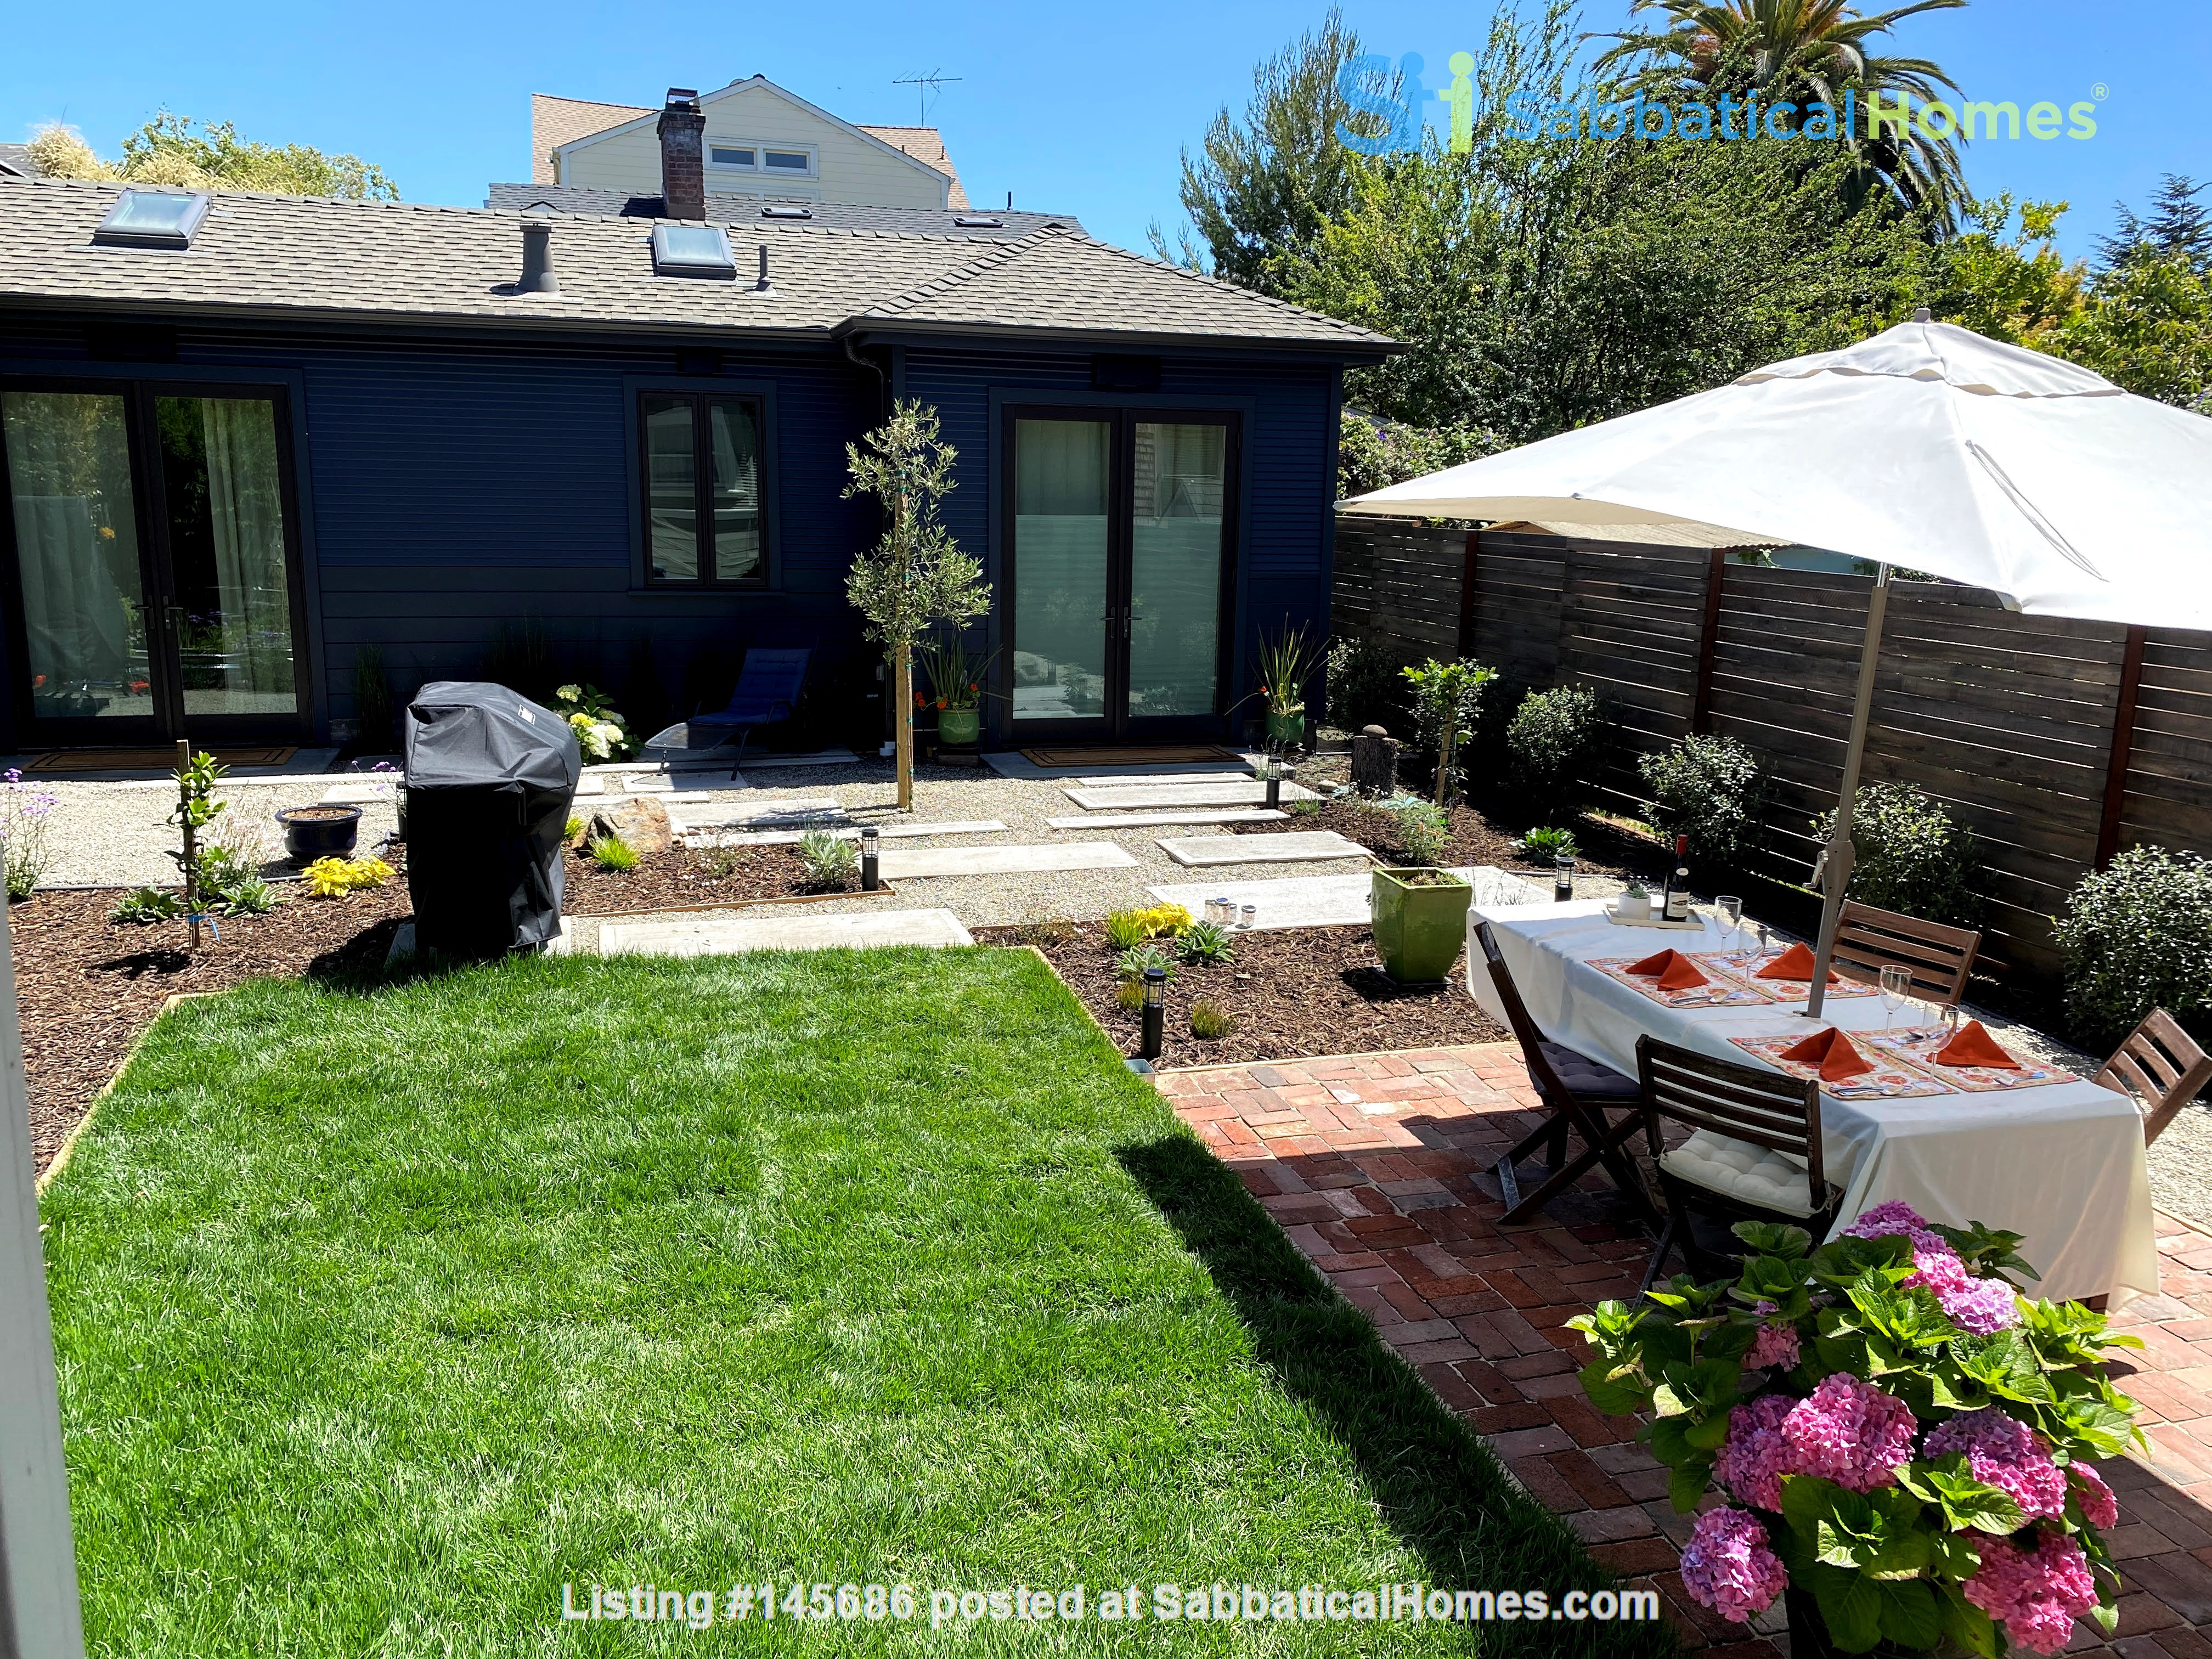 Newly Built Cosy and Modern South Berkeley Backyard Cottage - 1 Bed/1 Bath Home Rental in Berkeley 9